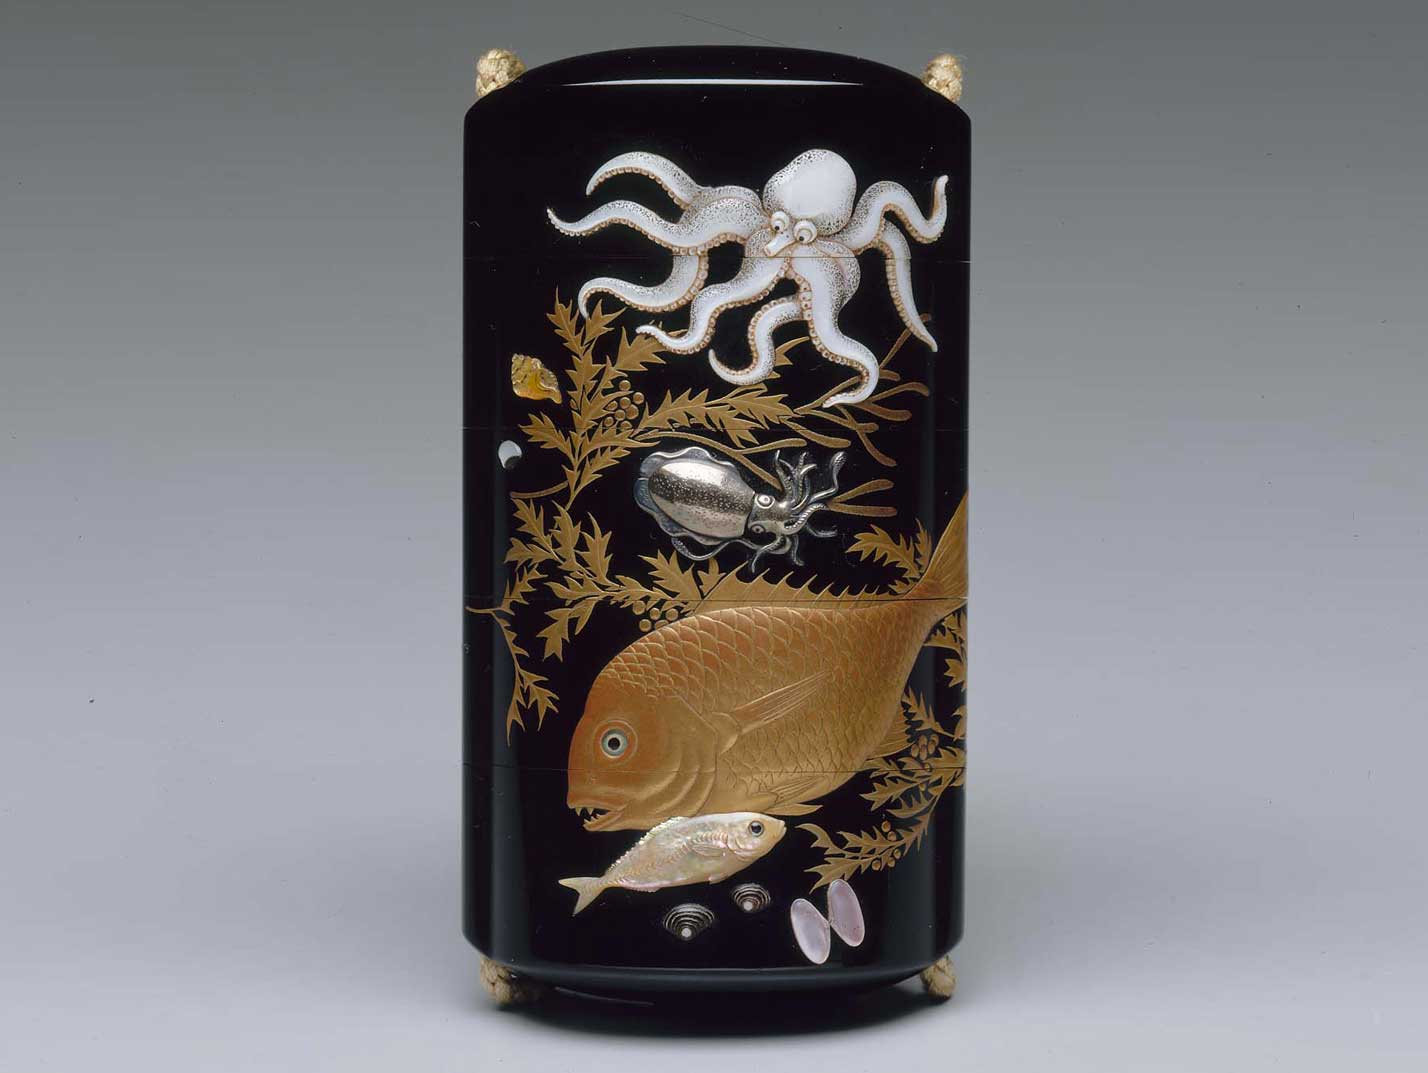 Lacquer Inro with Sealife Design, from the  Museum of Fine Arts, Boston  (mfa.org)